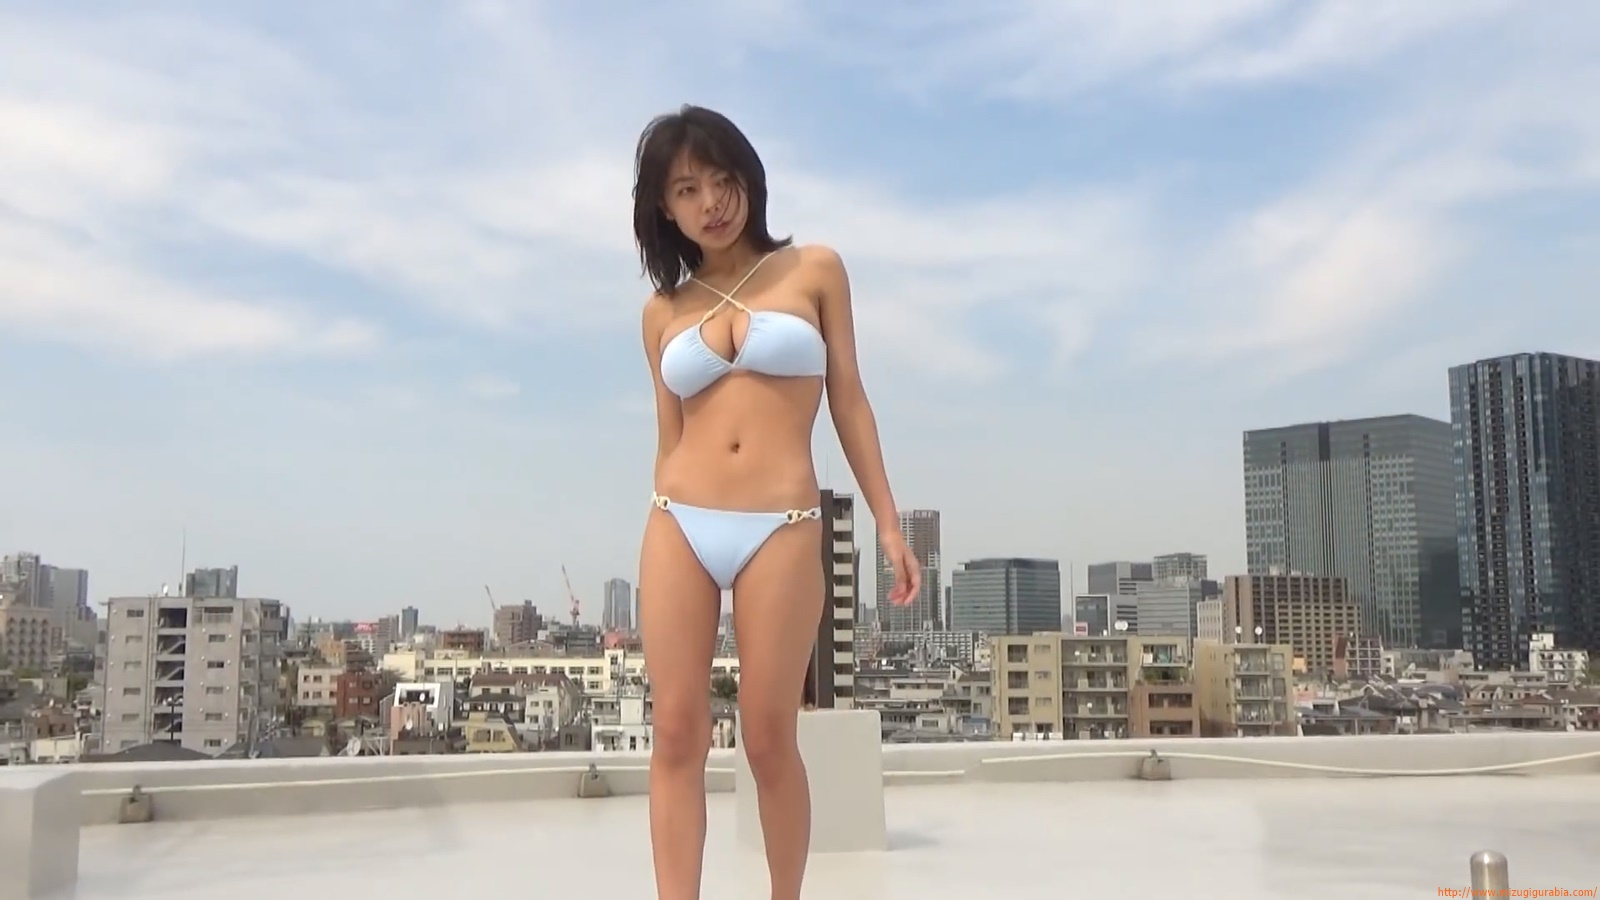 The gravure that makes all Japan cheer up Rio Teramoto 116